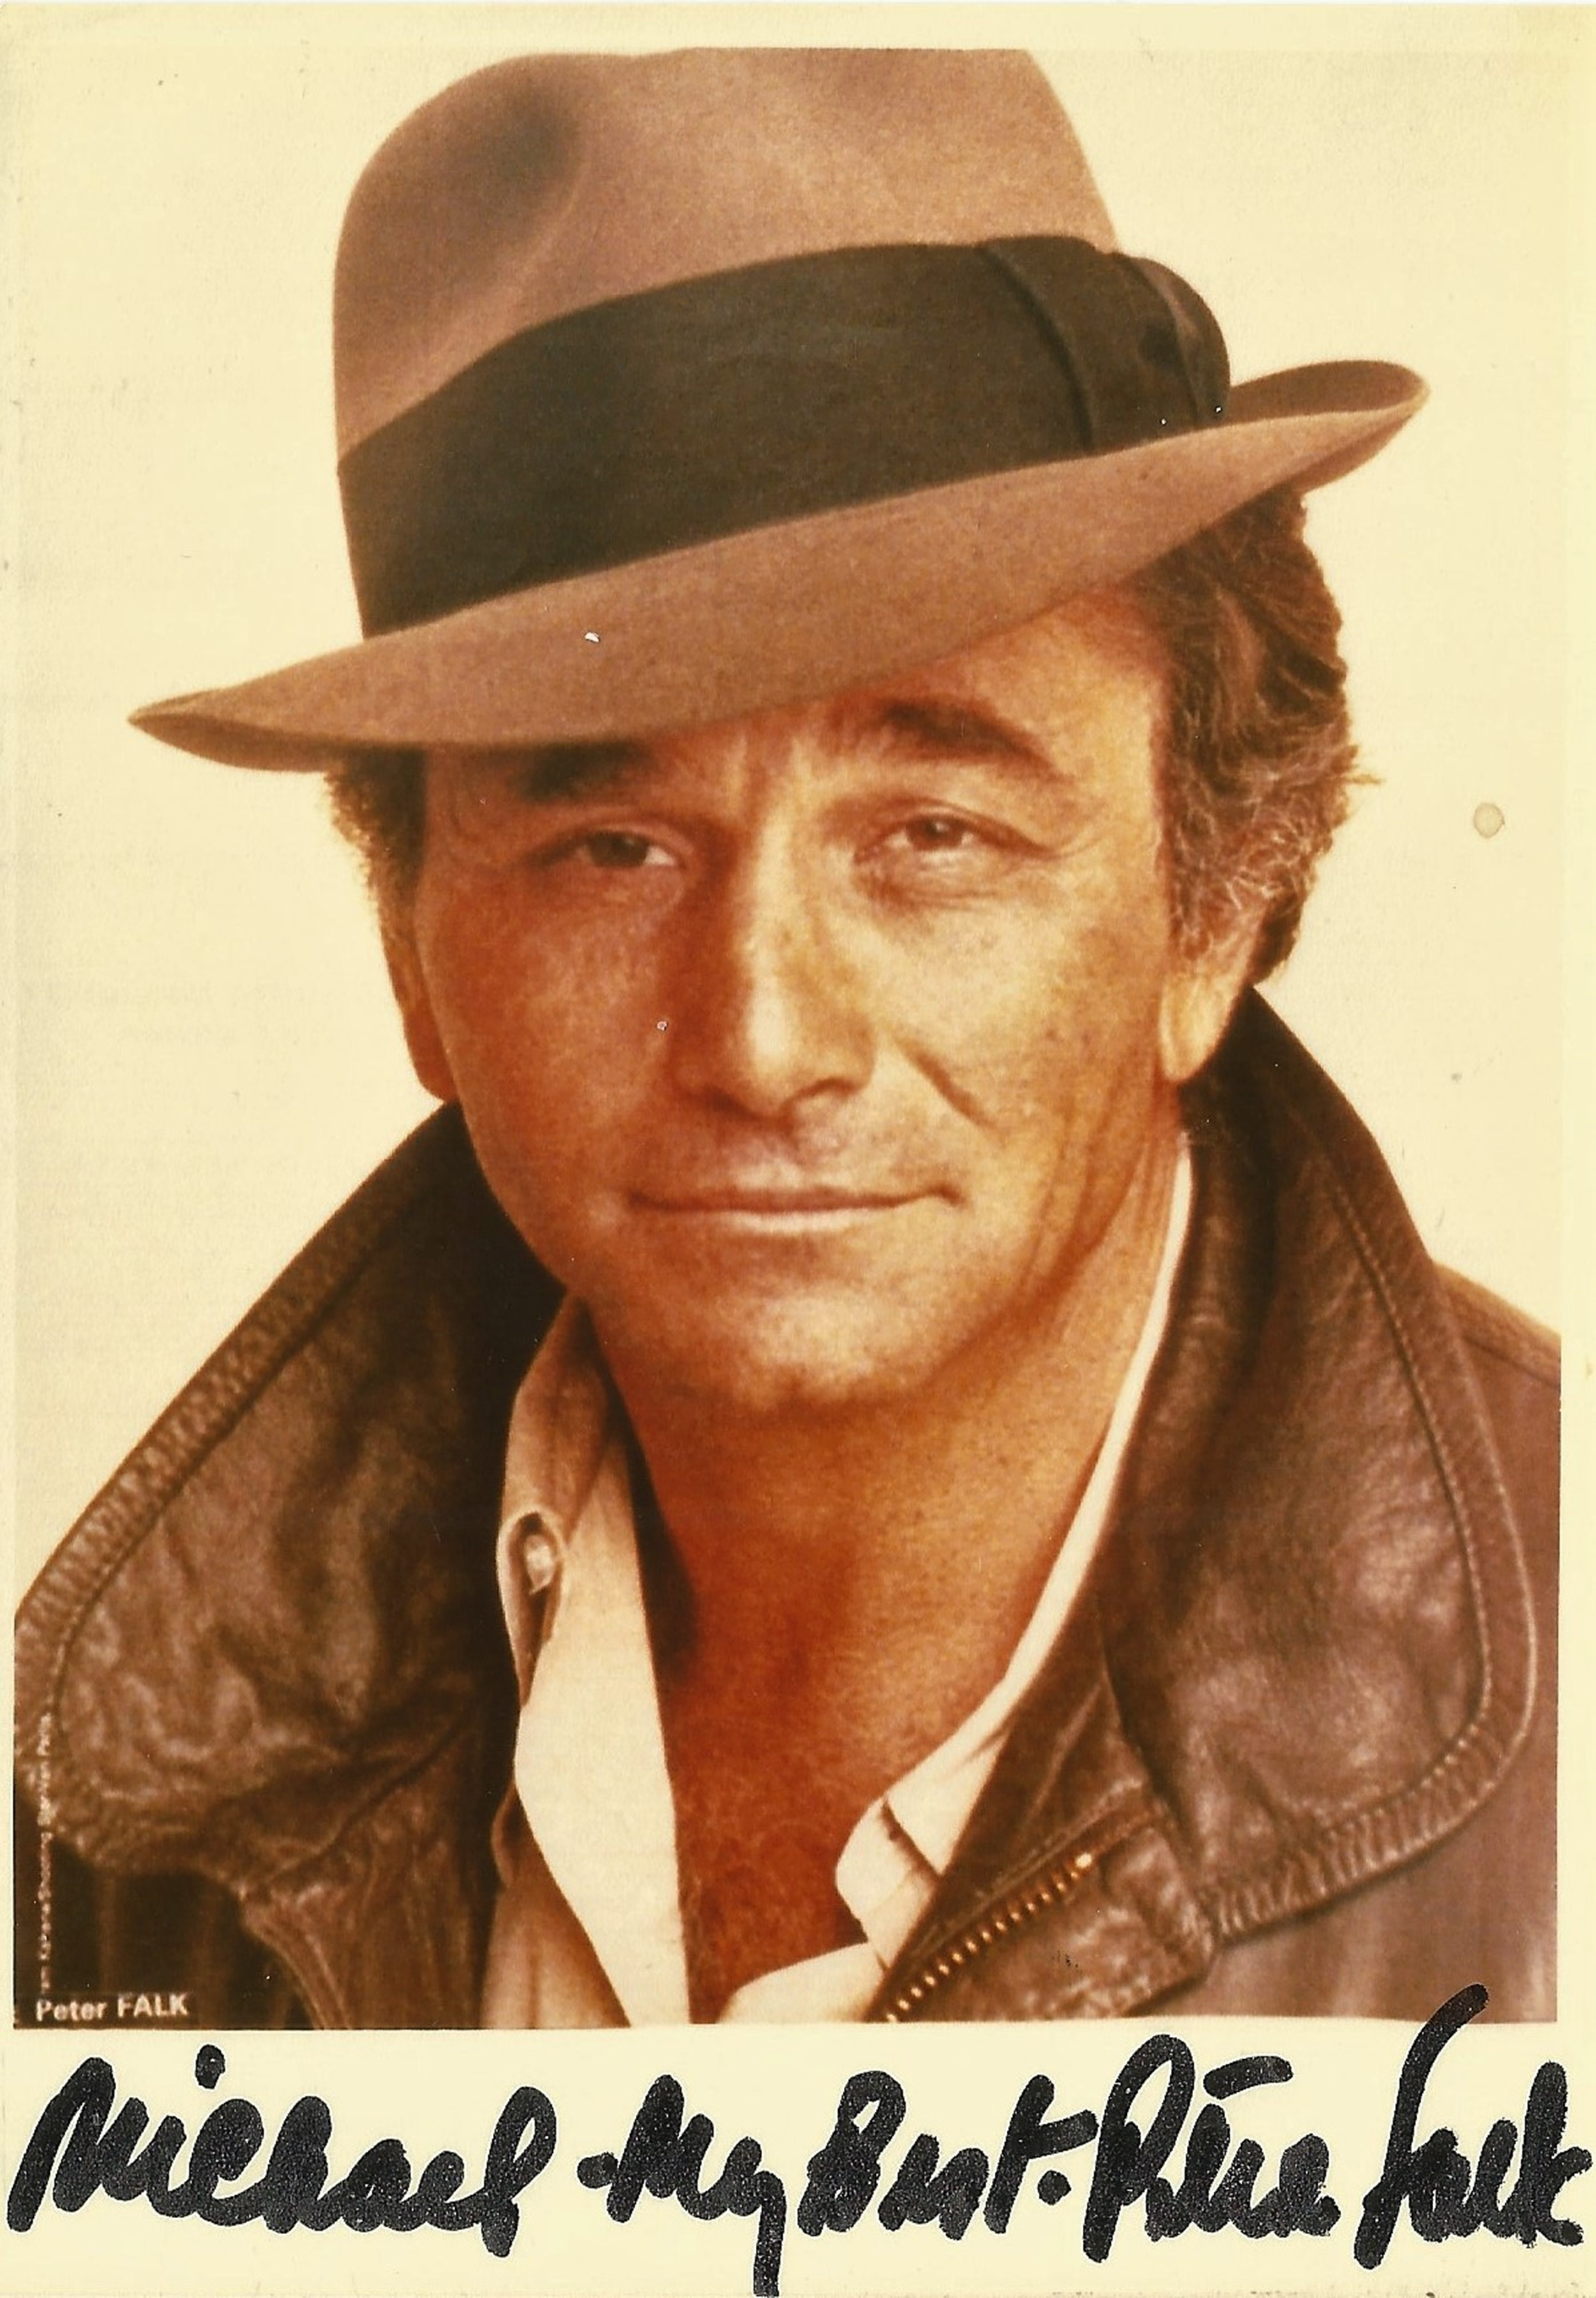 Peter Falk signed 6x4 colour photo. Good condition. All autographs come with a Certificate of